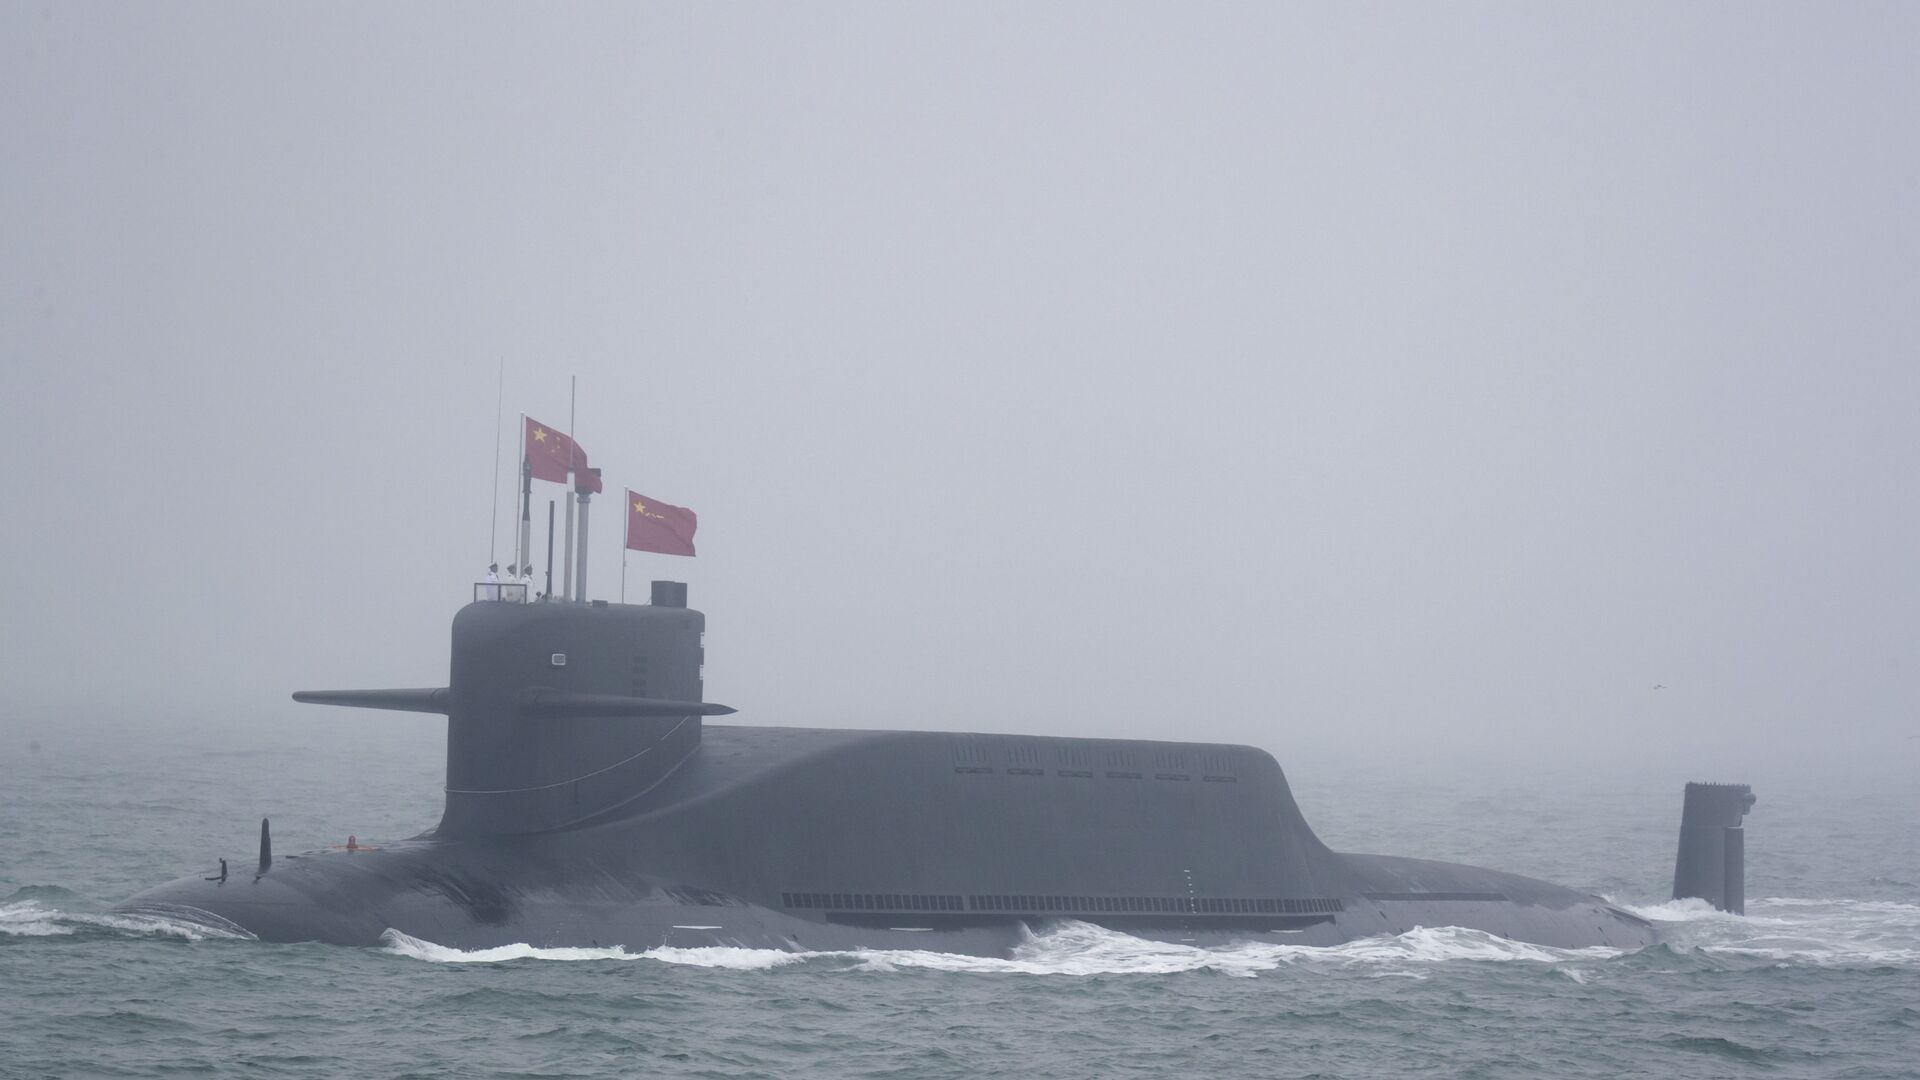 A new type 094A Jin-class nuclear submarine Long March 10 of the Chinese People's Liberation Army (PLA) Navy participates in a naval parade to commemorate the 70th anniversary of the founding of China's PLA Navy in the sea near Qingdao in eastern China's Shandong province, Tuesday, April 23, 2019 - Sputnik International, 1920, 03.05.2021